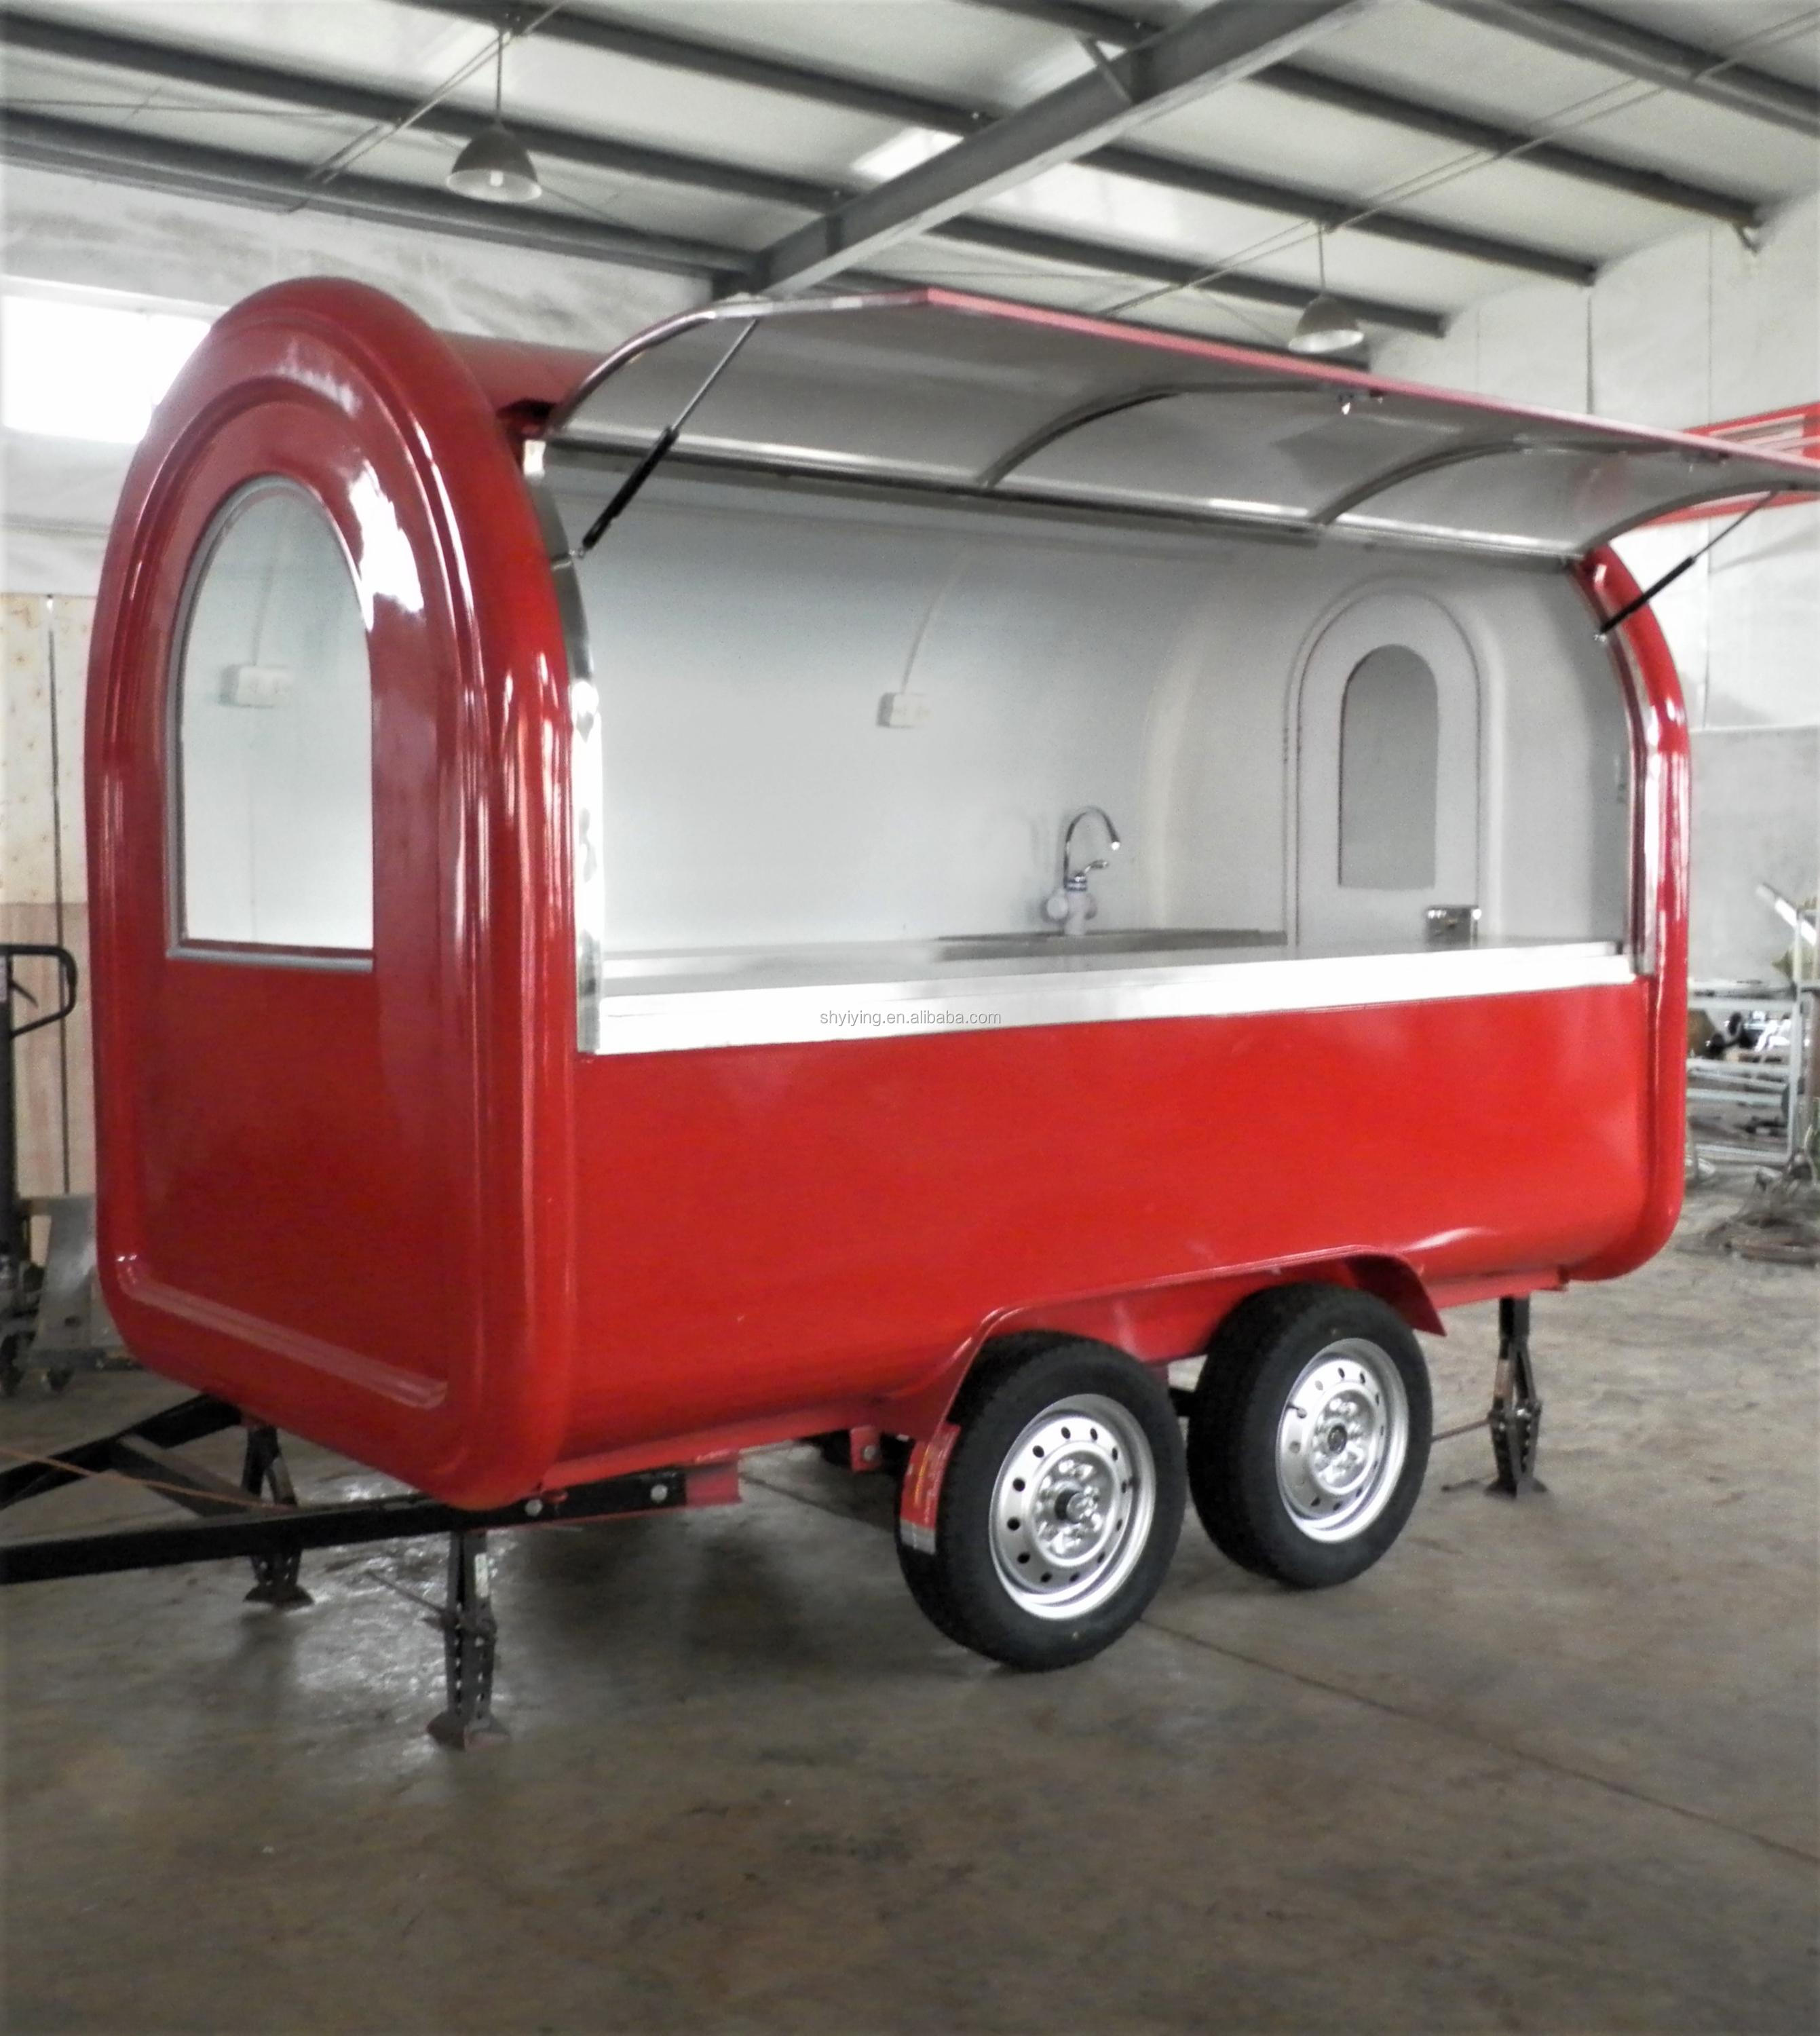 Mobile Food Truck For Sale Mobile Food Truck For Sale Suppliers and